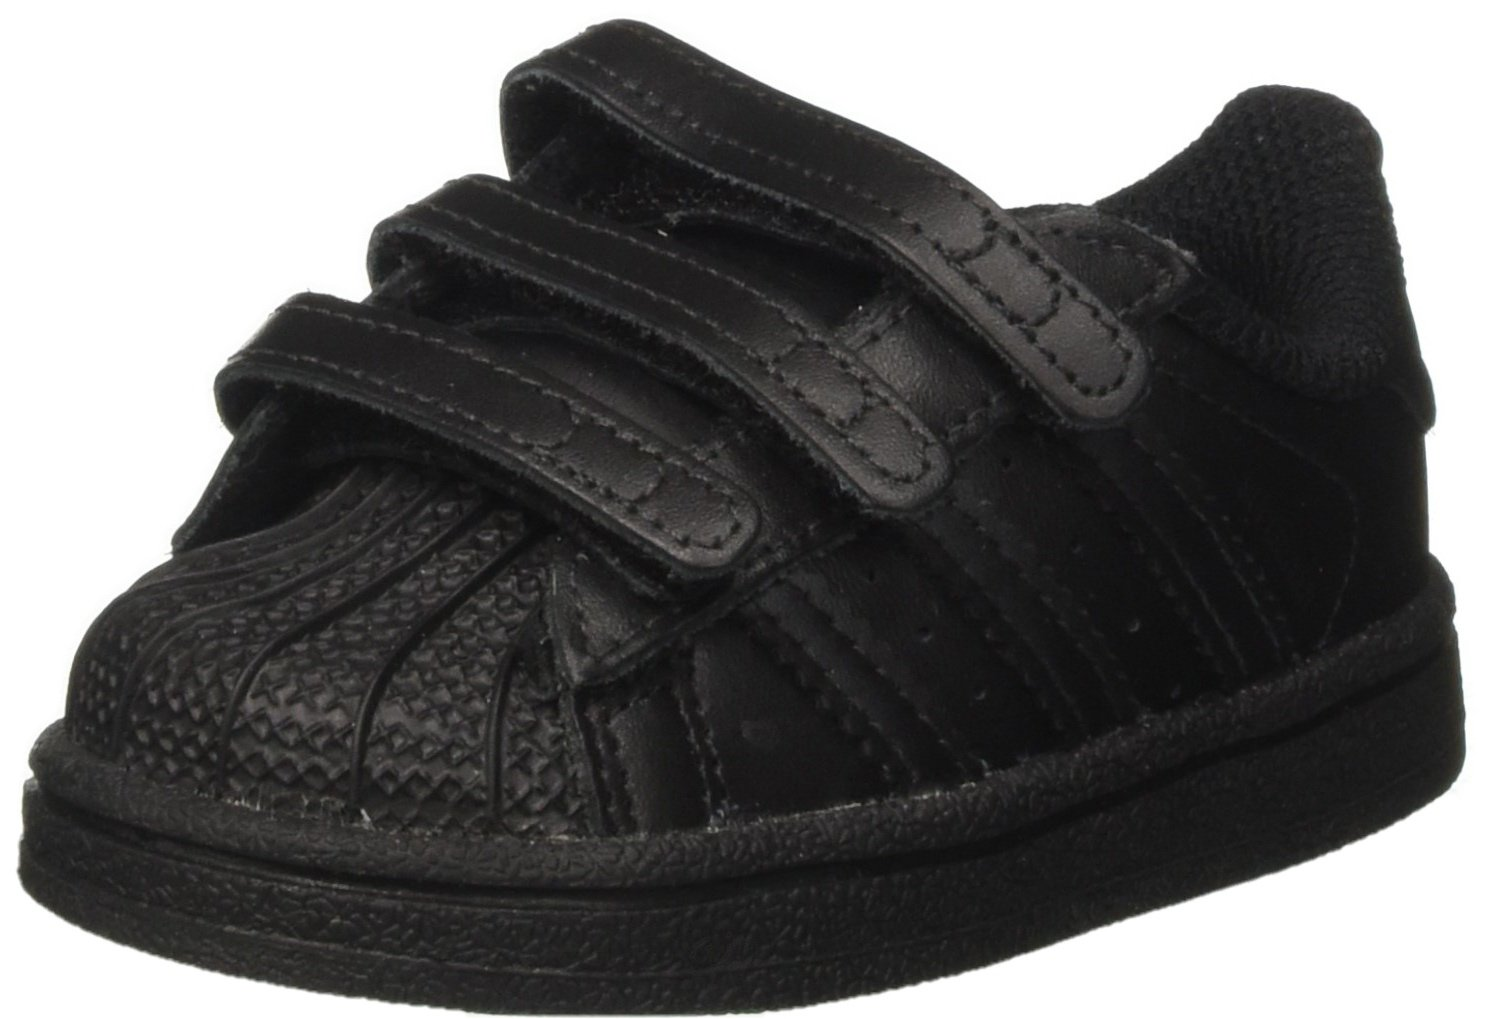 adidas Superstar Shoes, Unisex Kids' Trainers